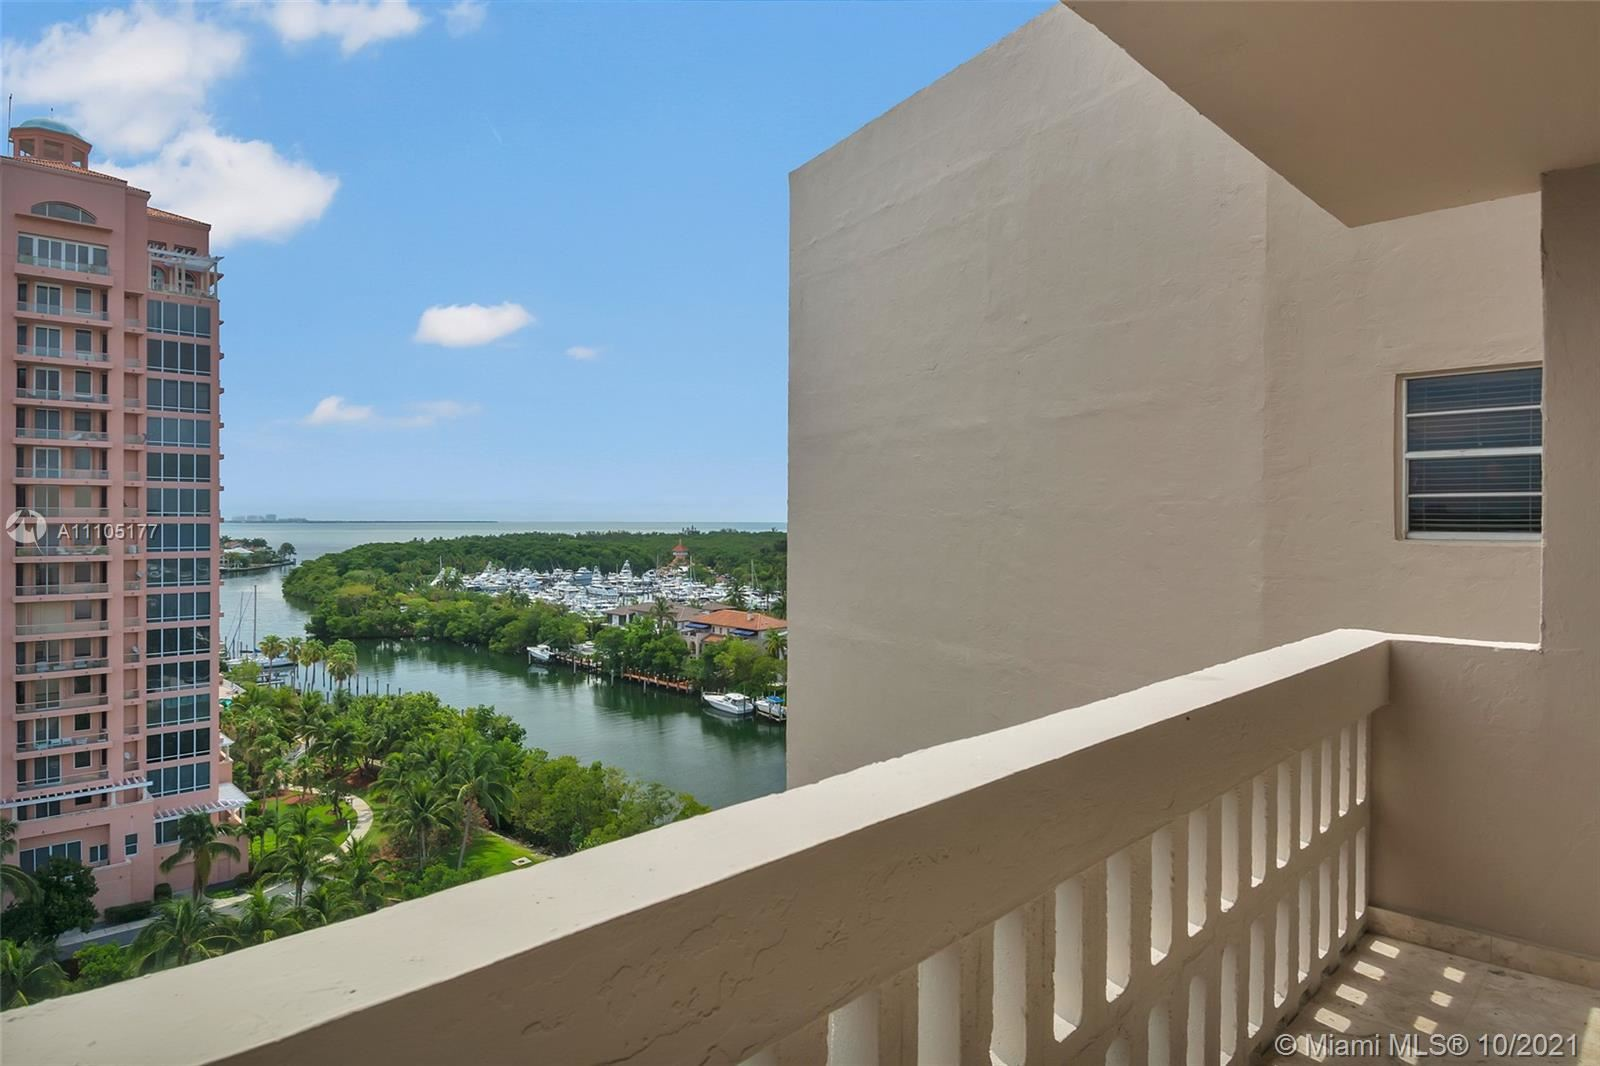 90 Edgewater Dr #1222, Coral Gables, FL 33133 - #: A11105177